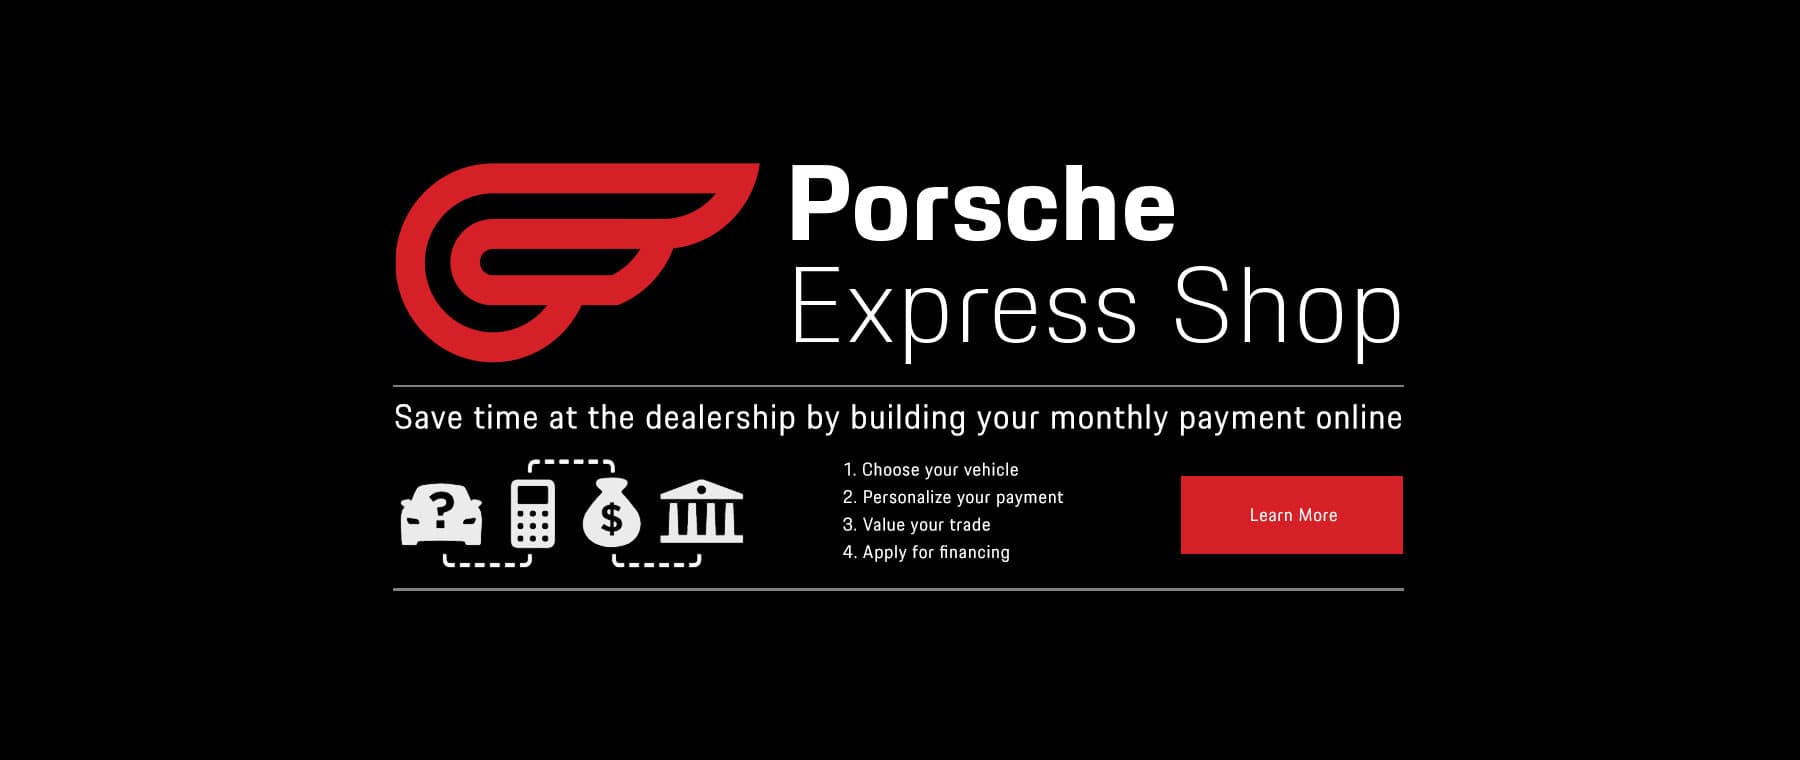 Porsche Express Shop: Save time at the dealership by building your monthly payment online.